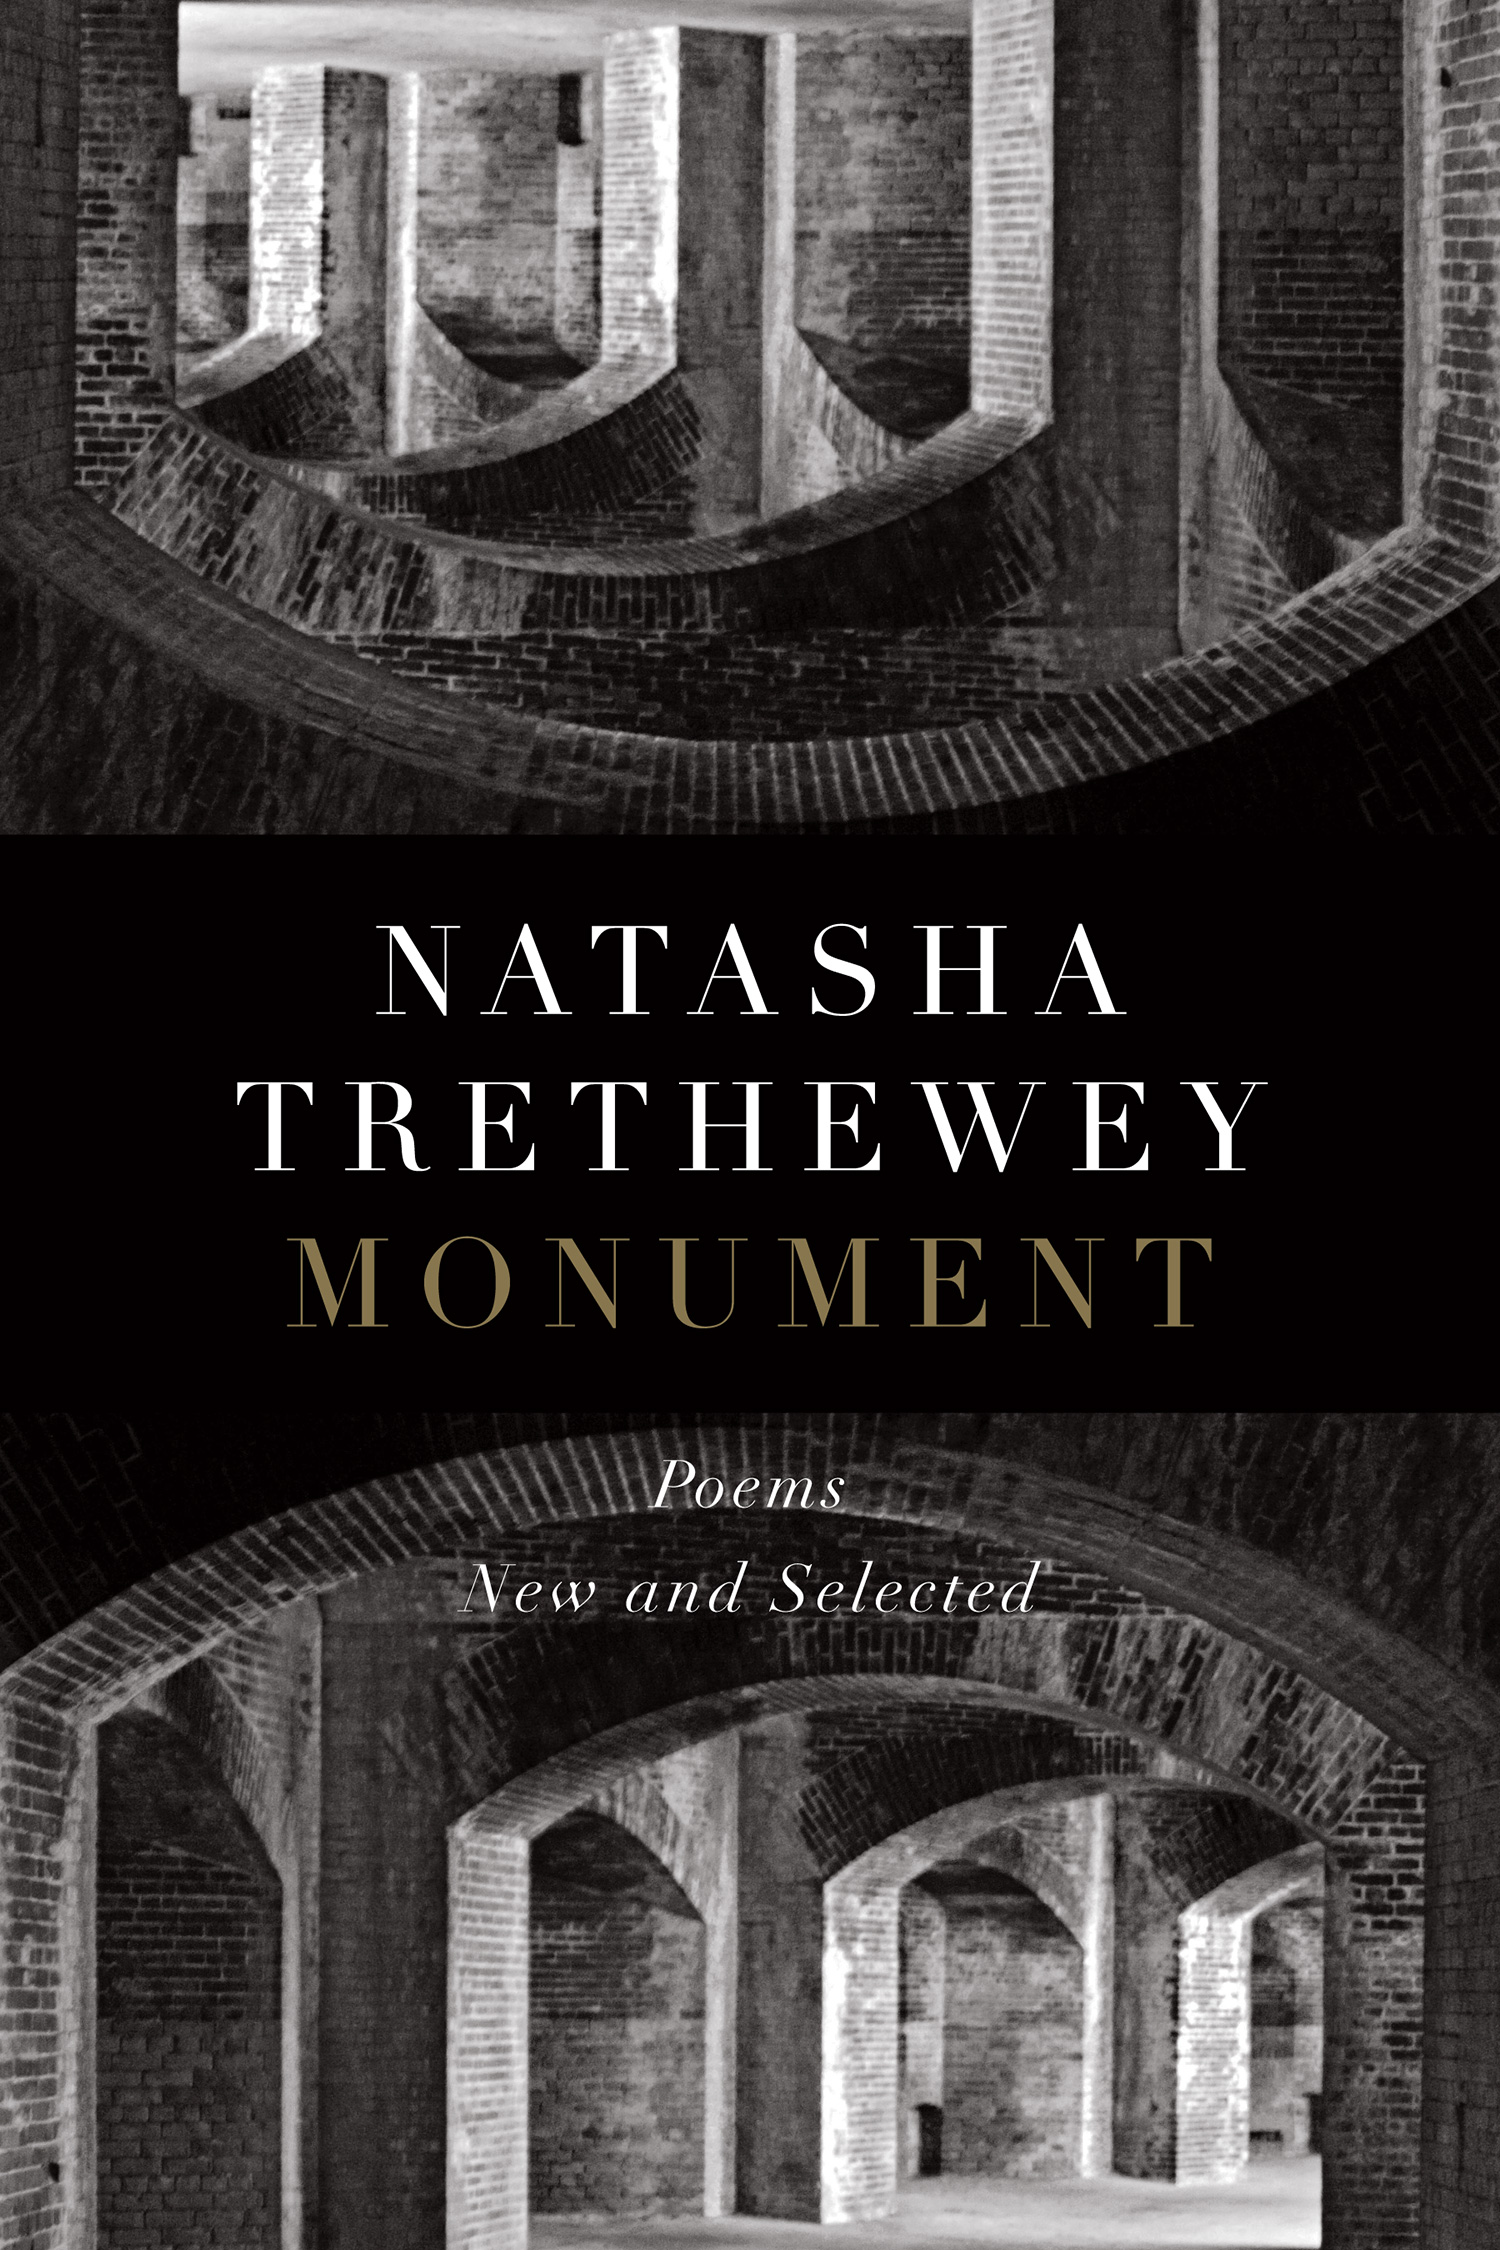 The cover of the book Monument